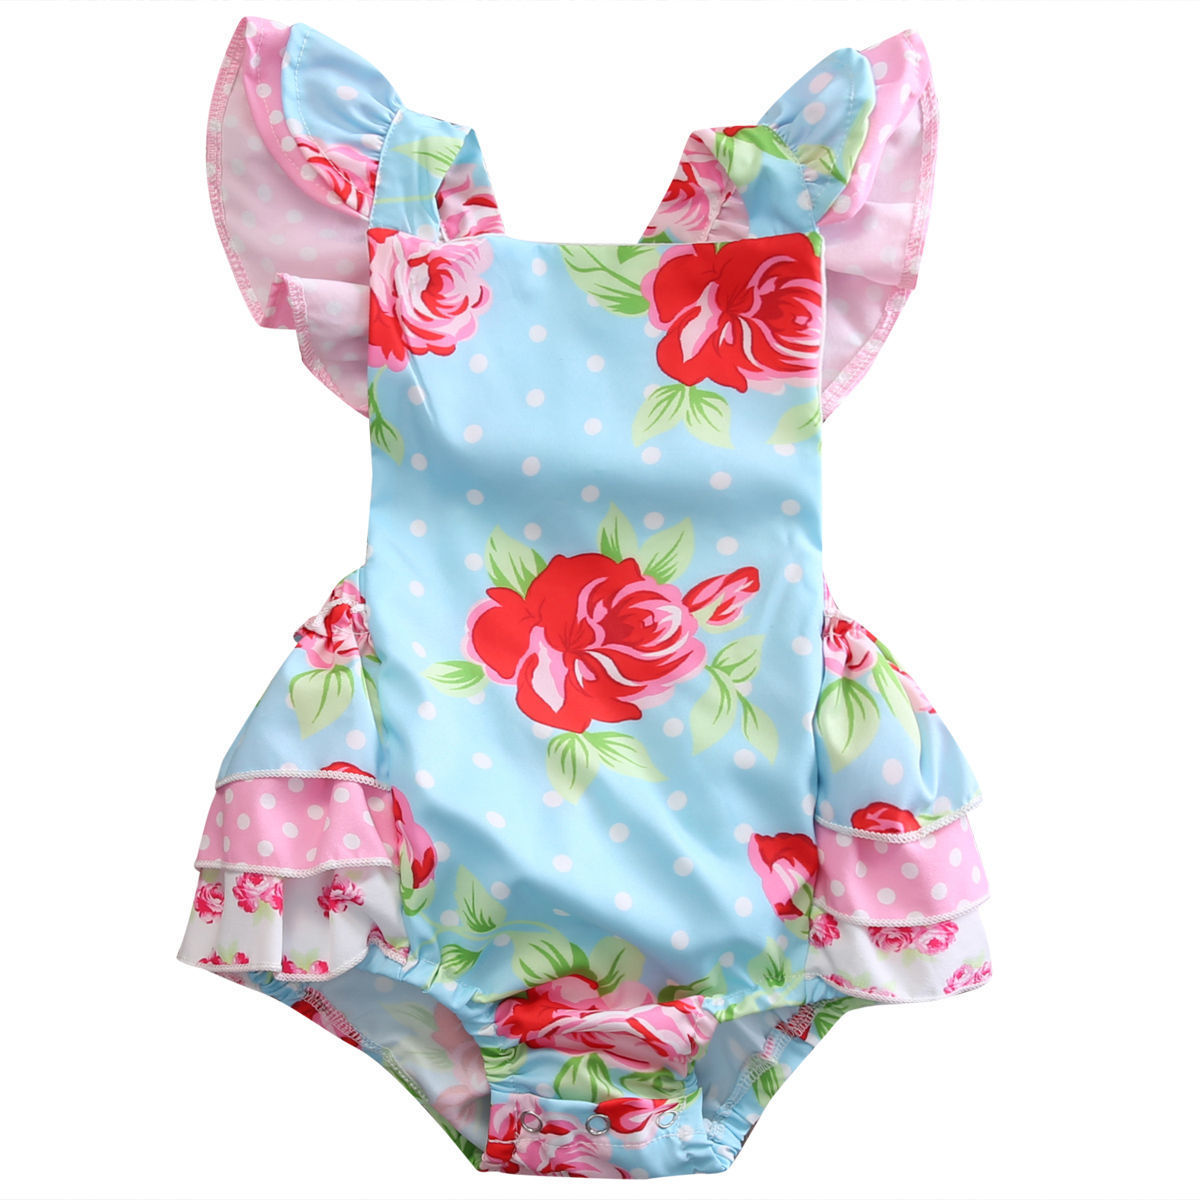 Summer Infant Baby Girl Rose Flower Romper Ruffle Bow Romper +Headband Outfit White Dot Clothes 0-6M summer infant baby girl flower crop top shorties pants outfit sunsuit